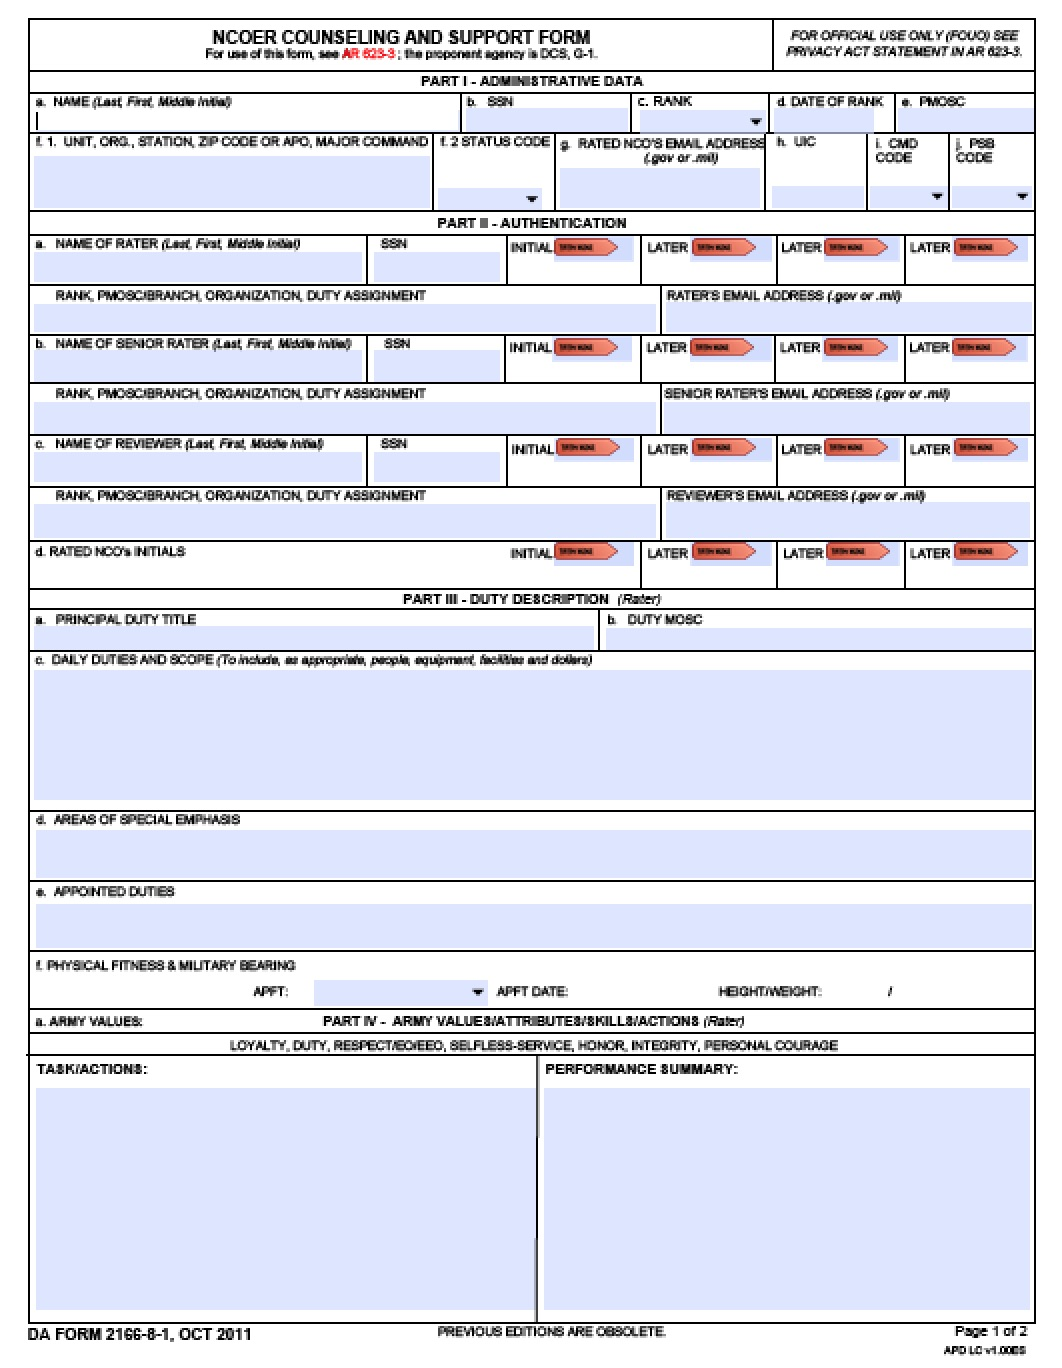 da2166_8_1 Army Ncoer Support Form Bullet Examples on new oer support form example, army soldier data sheet, 2166-8-1 example, army stop meal deductions 4187 example, continuity letter ncoer example, army warrant officer resume example, compassionate reassignment memo example, army apft badge memo example, army threat awareness reporting program, army promotion counseling example,